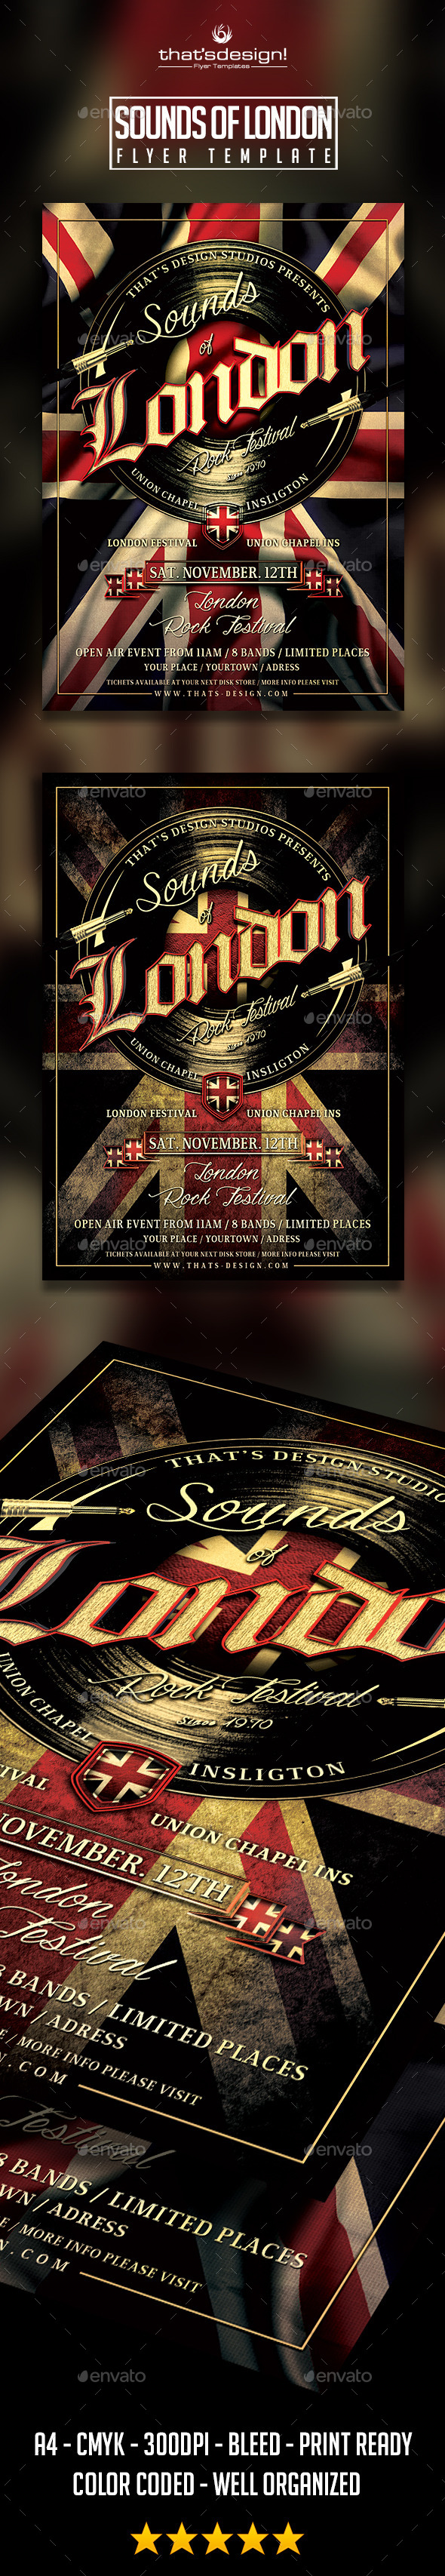 GraphicRiver Sounds of London Flyer Poster Template 8954256